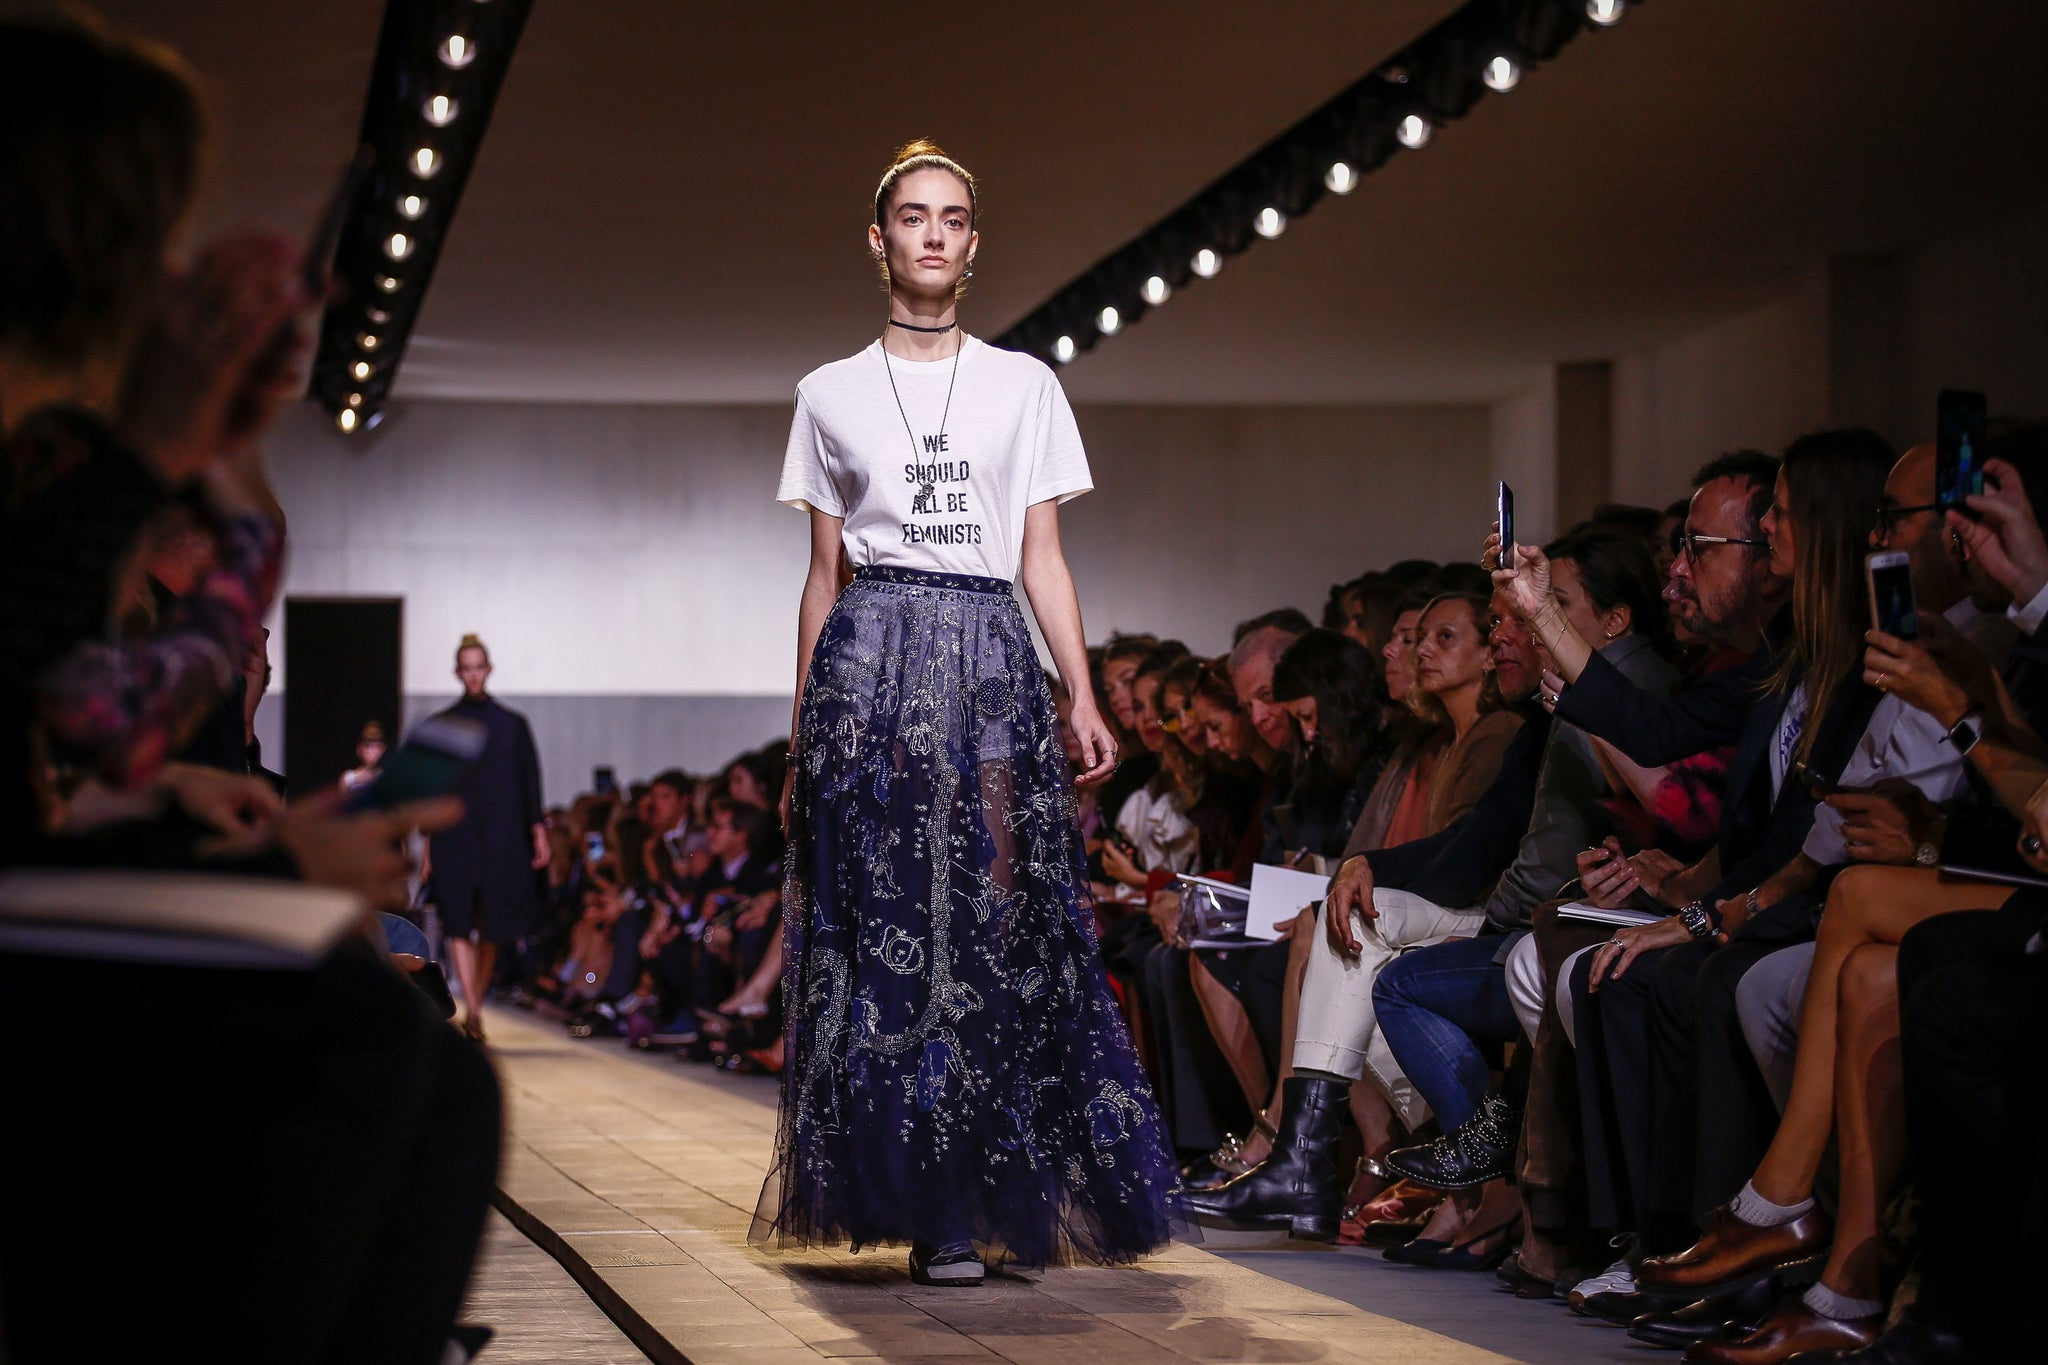 Feminism, Fencing and Tarot Cards in Chiuri's Debut for Dior